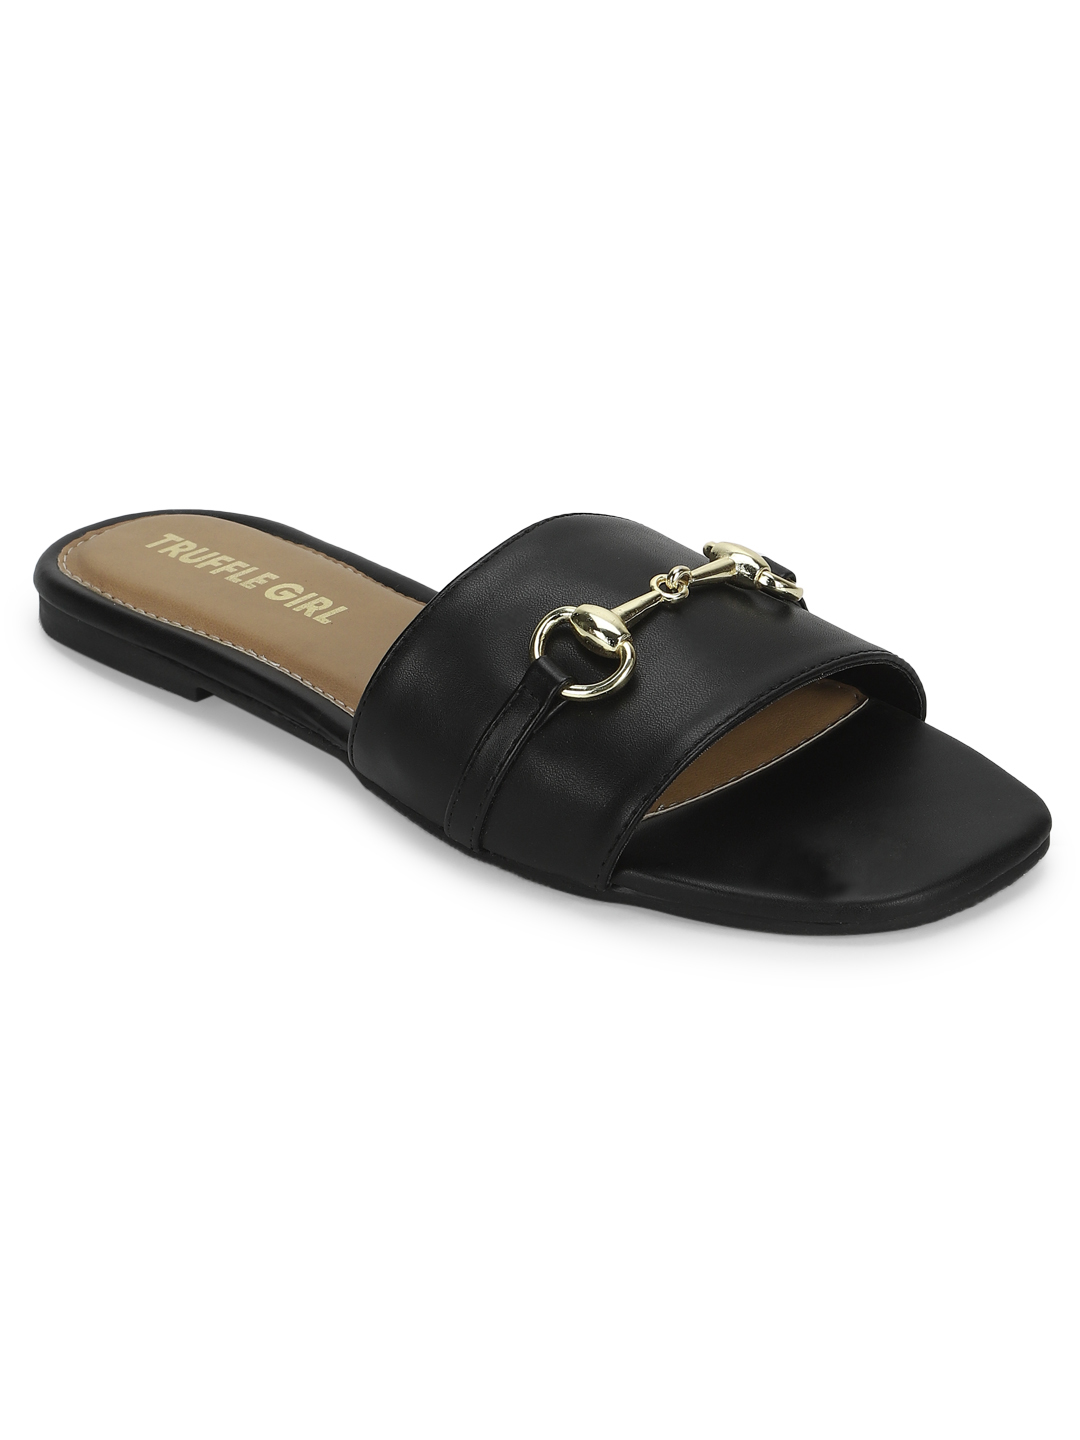 Truffle Collection   Black PU Slip Ons With Buckle Strap